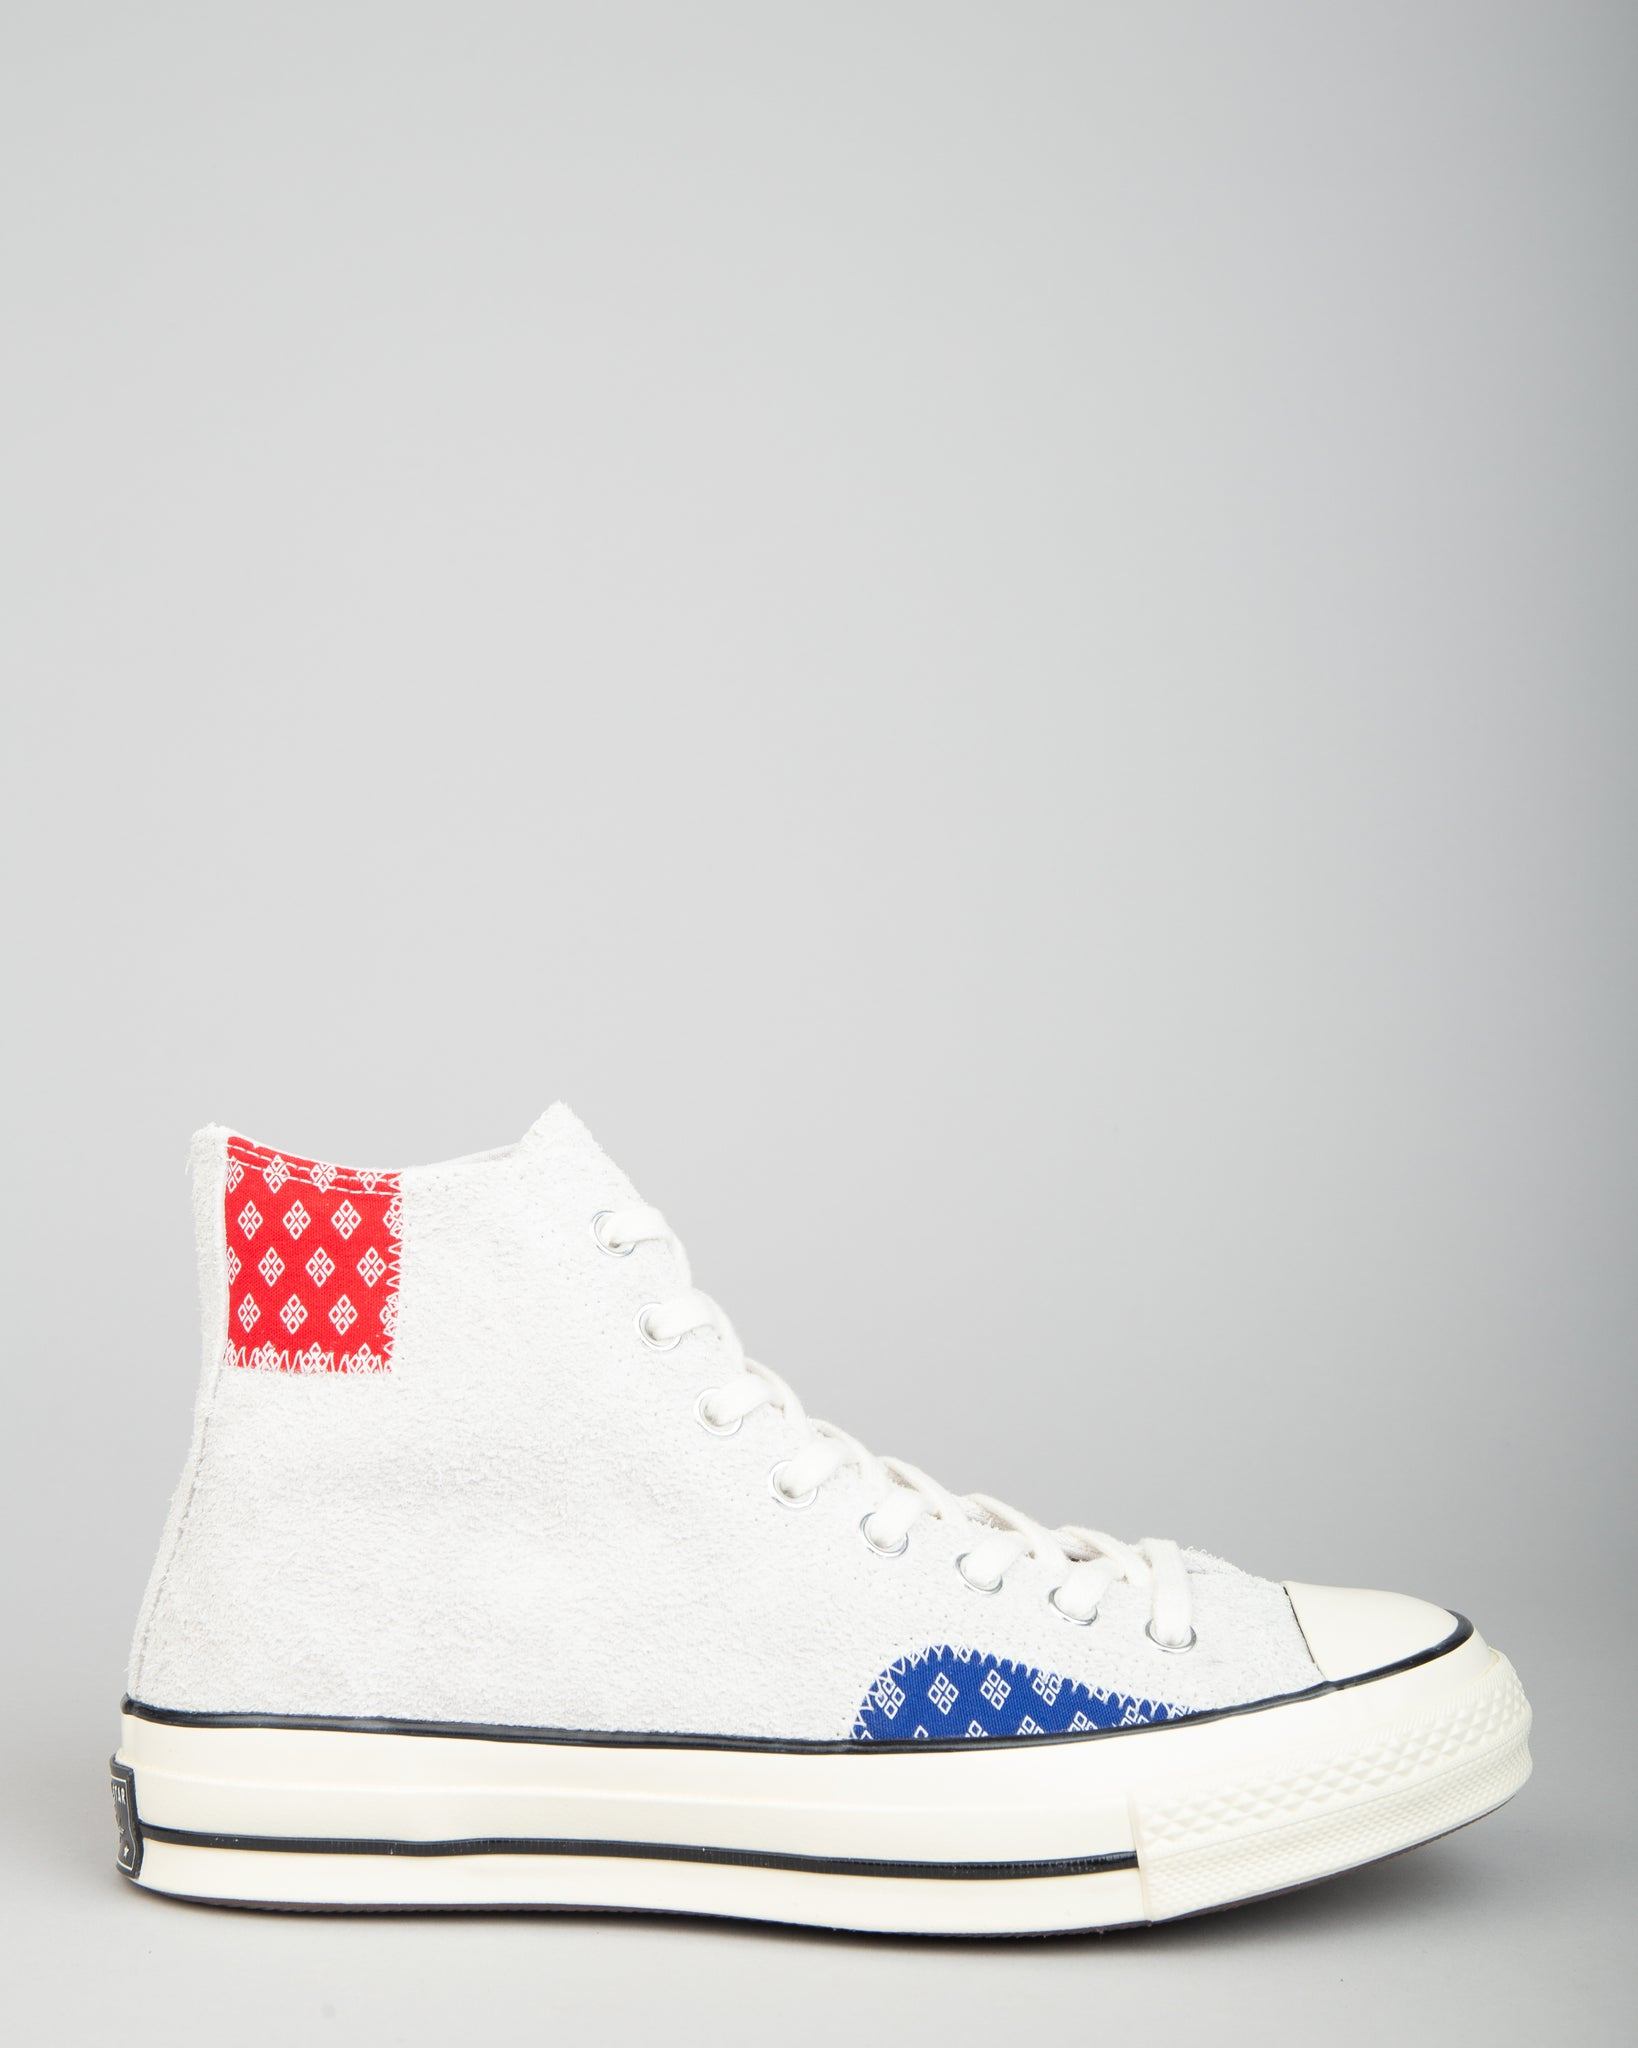 Chuck 70 HI Patchwork Photon Dust/Rush Blue